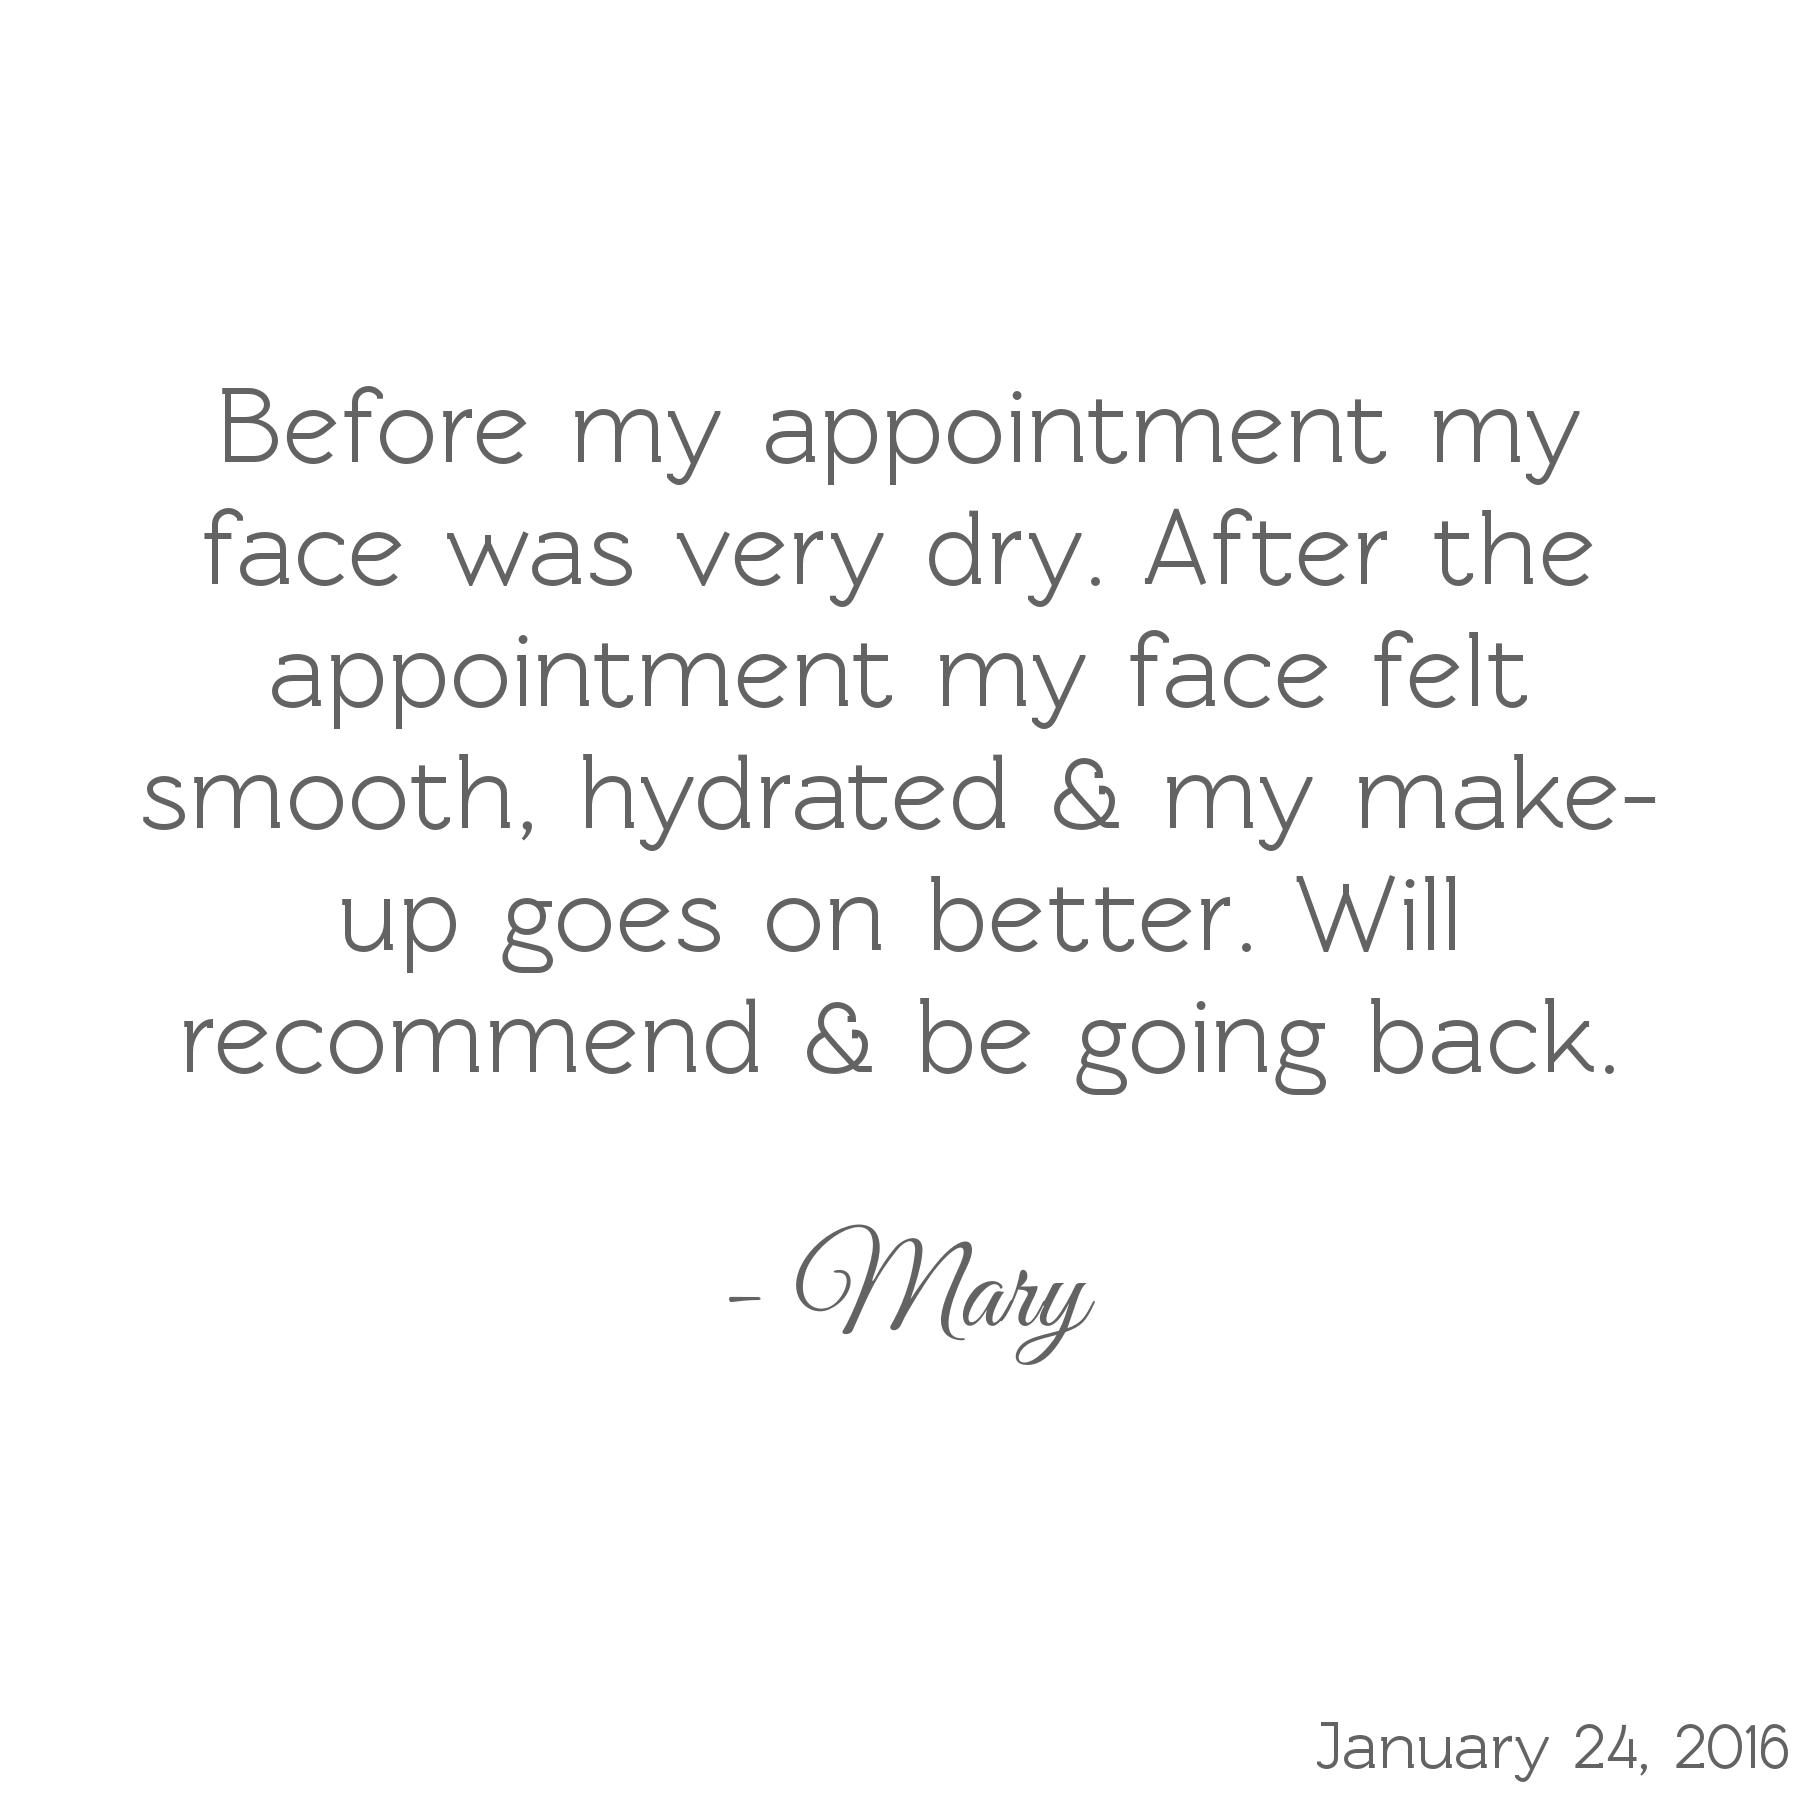 Before my appointment my face was very dry. After my appointment my face felt smooth, hydrated, & my make-up goes on better. Will recommend & be going back. -Mary